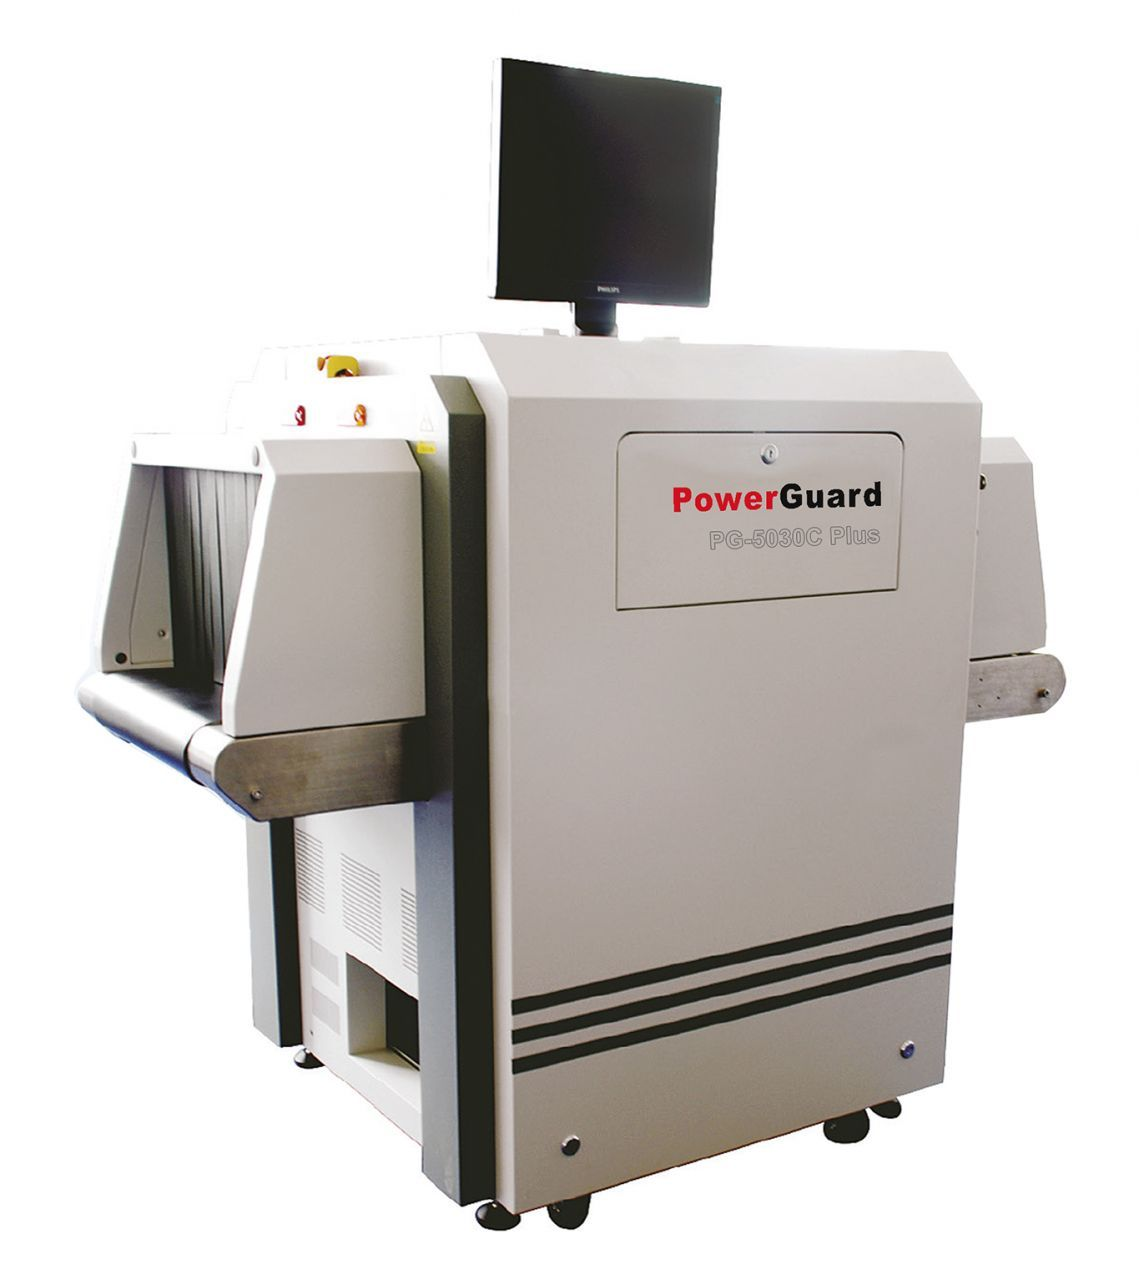 PG-6550 Plus X-Ray Cihazı